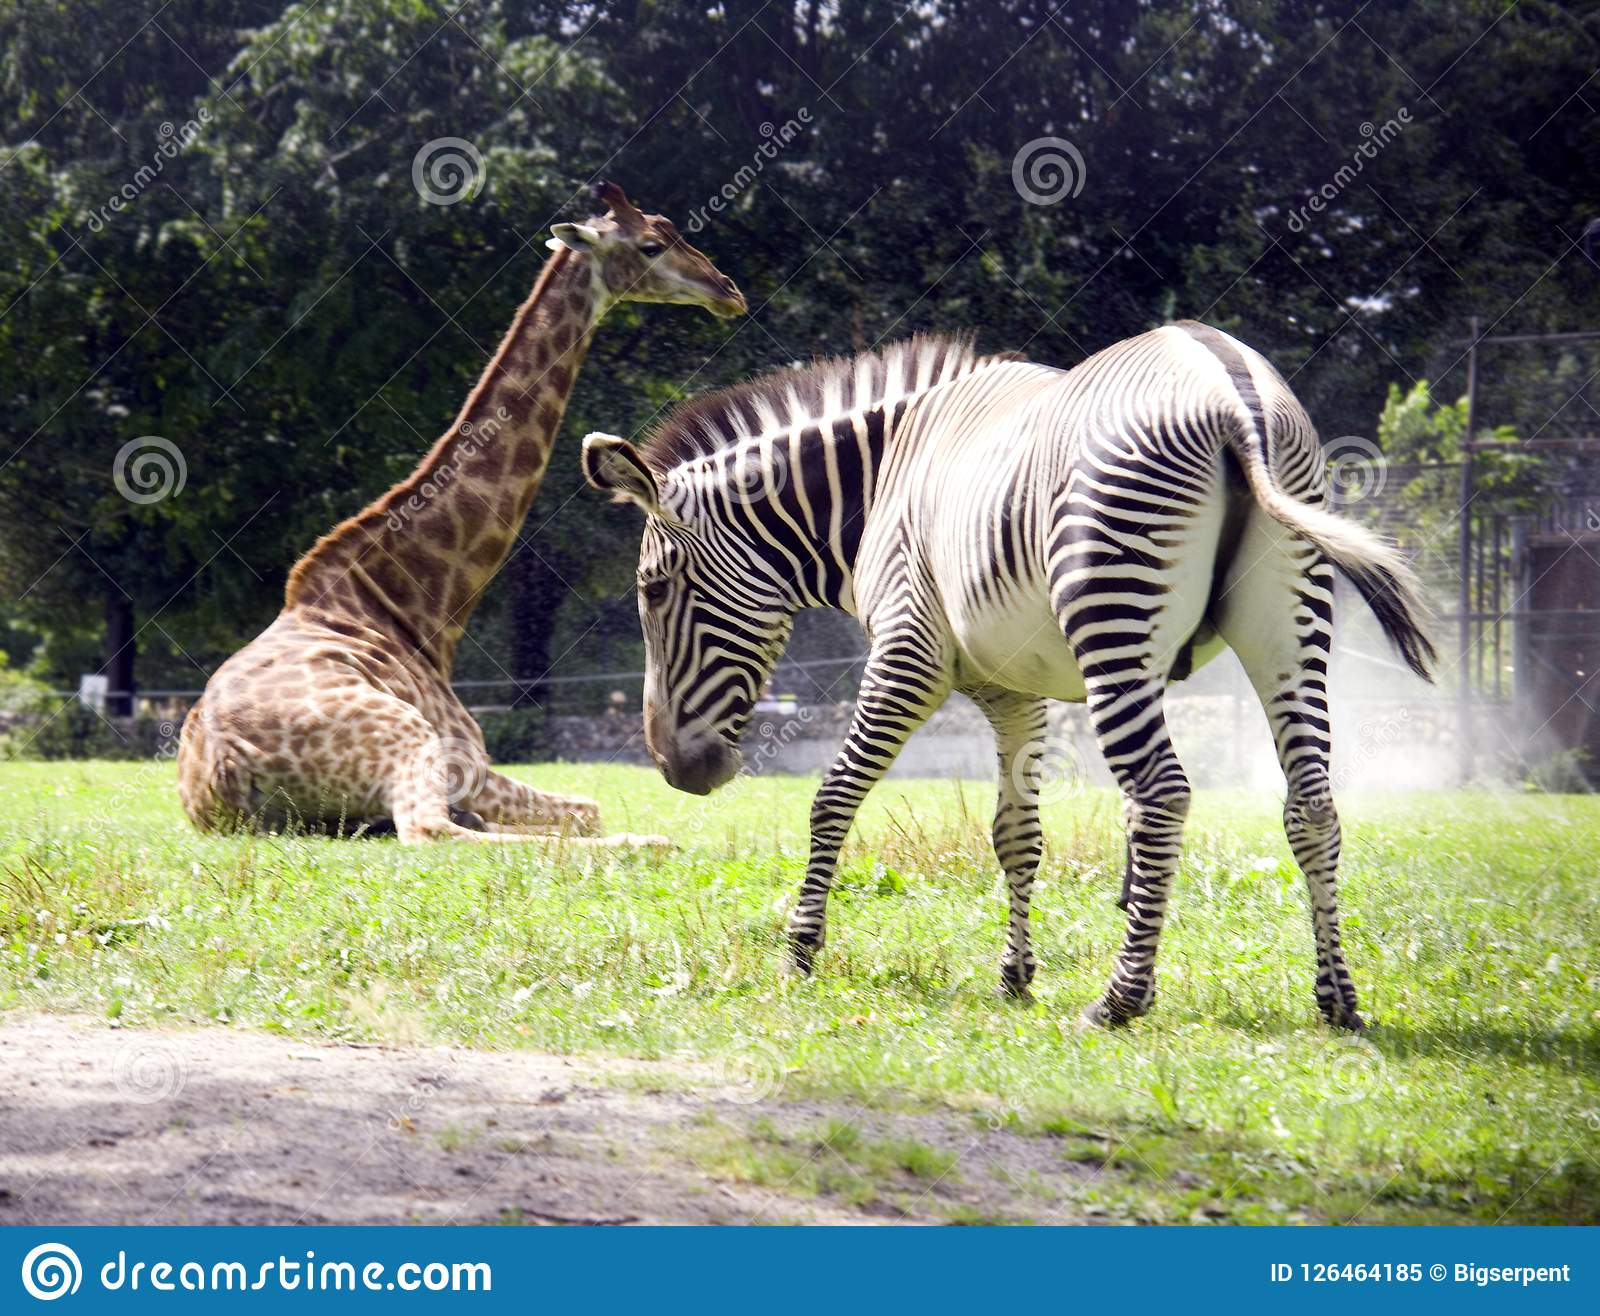 giraffe zebra africa mammal thin long neck spotted savannah striped